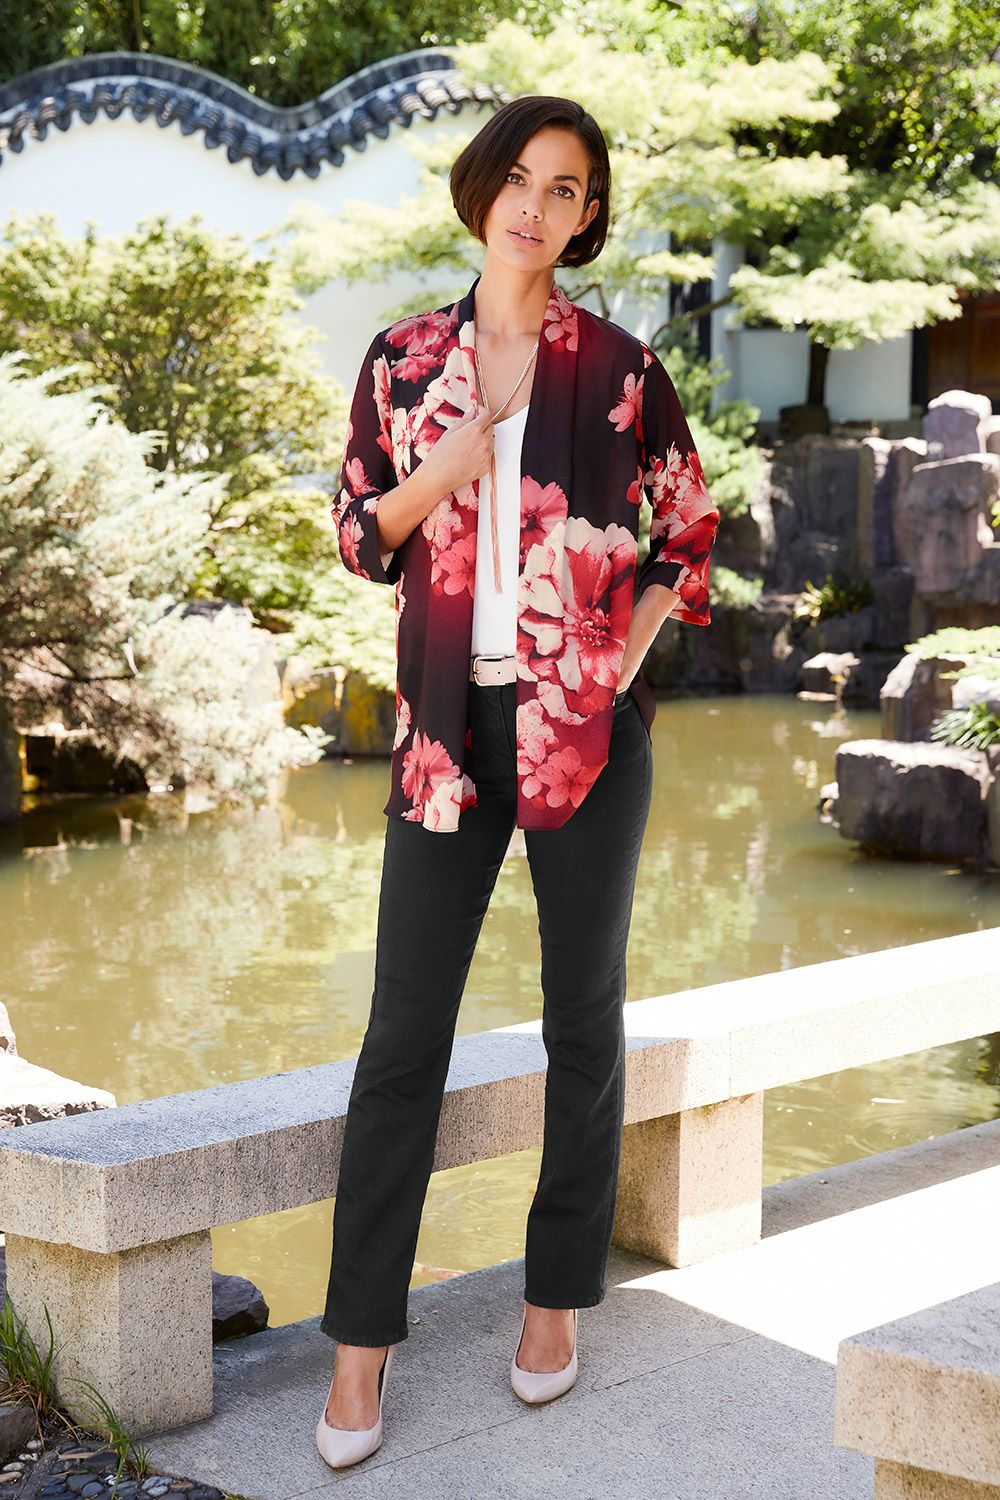 Buy How to floral wear printed jeans picture trends